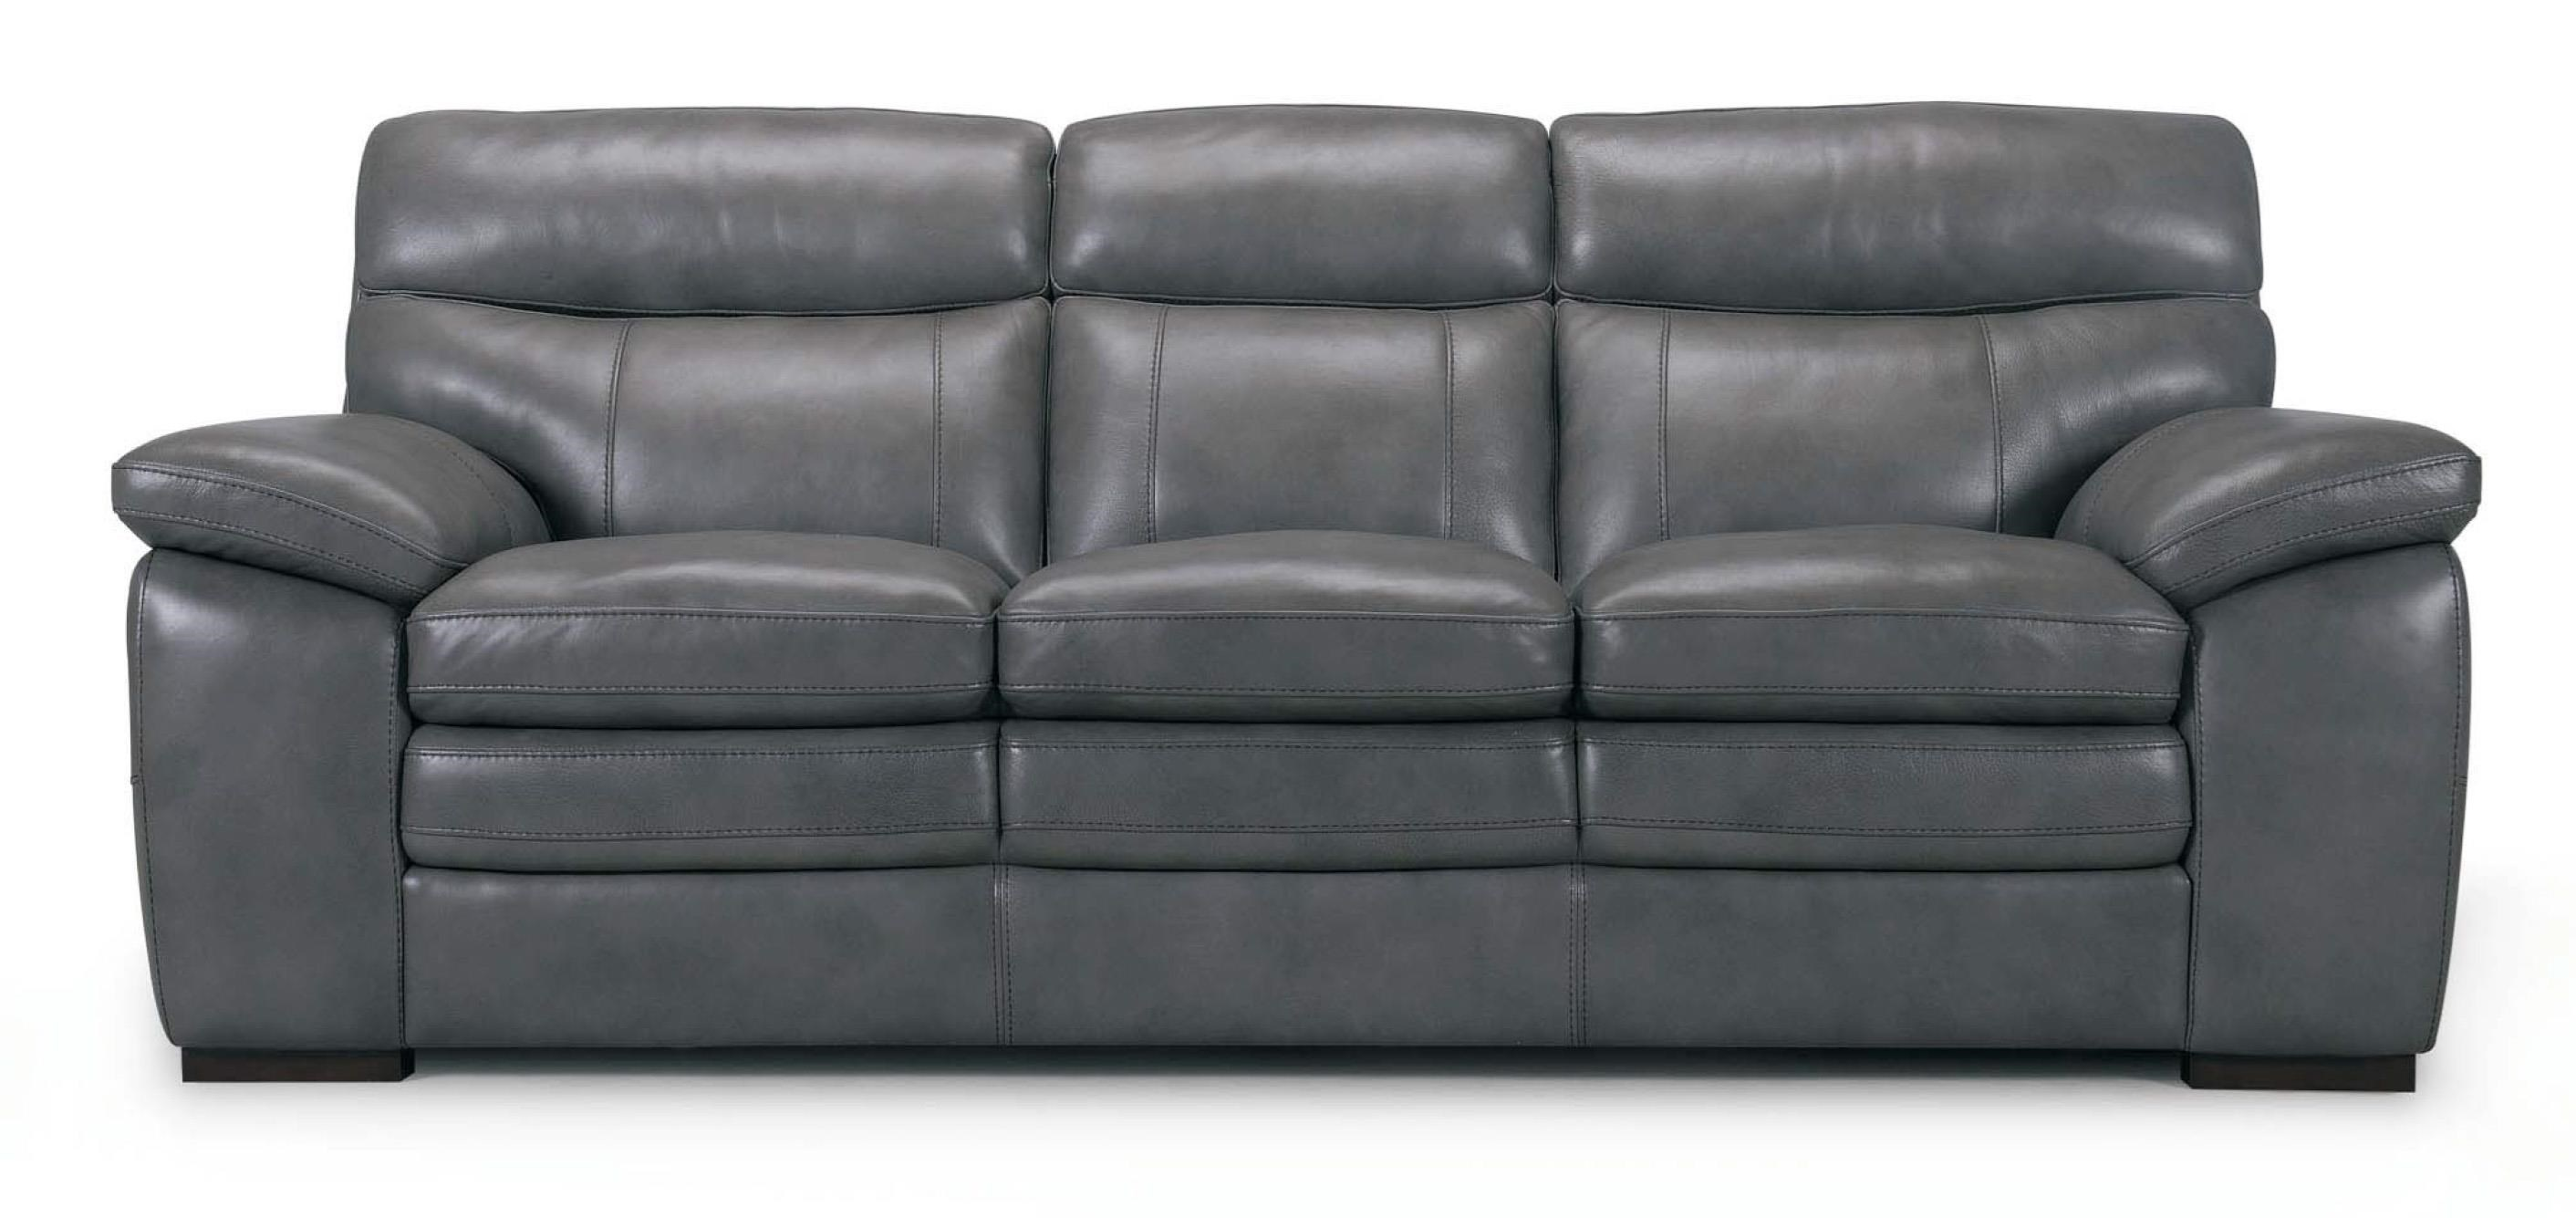 violino leather sofa stockists sofaland es 3658 3p dunk and bright